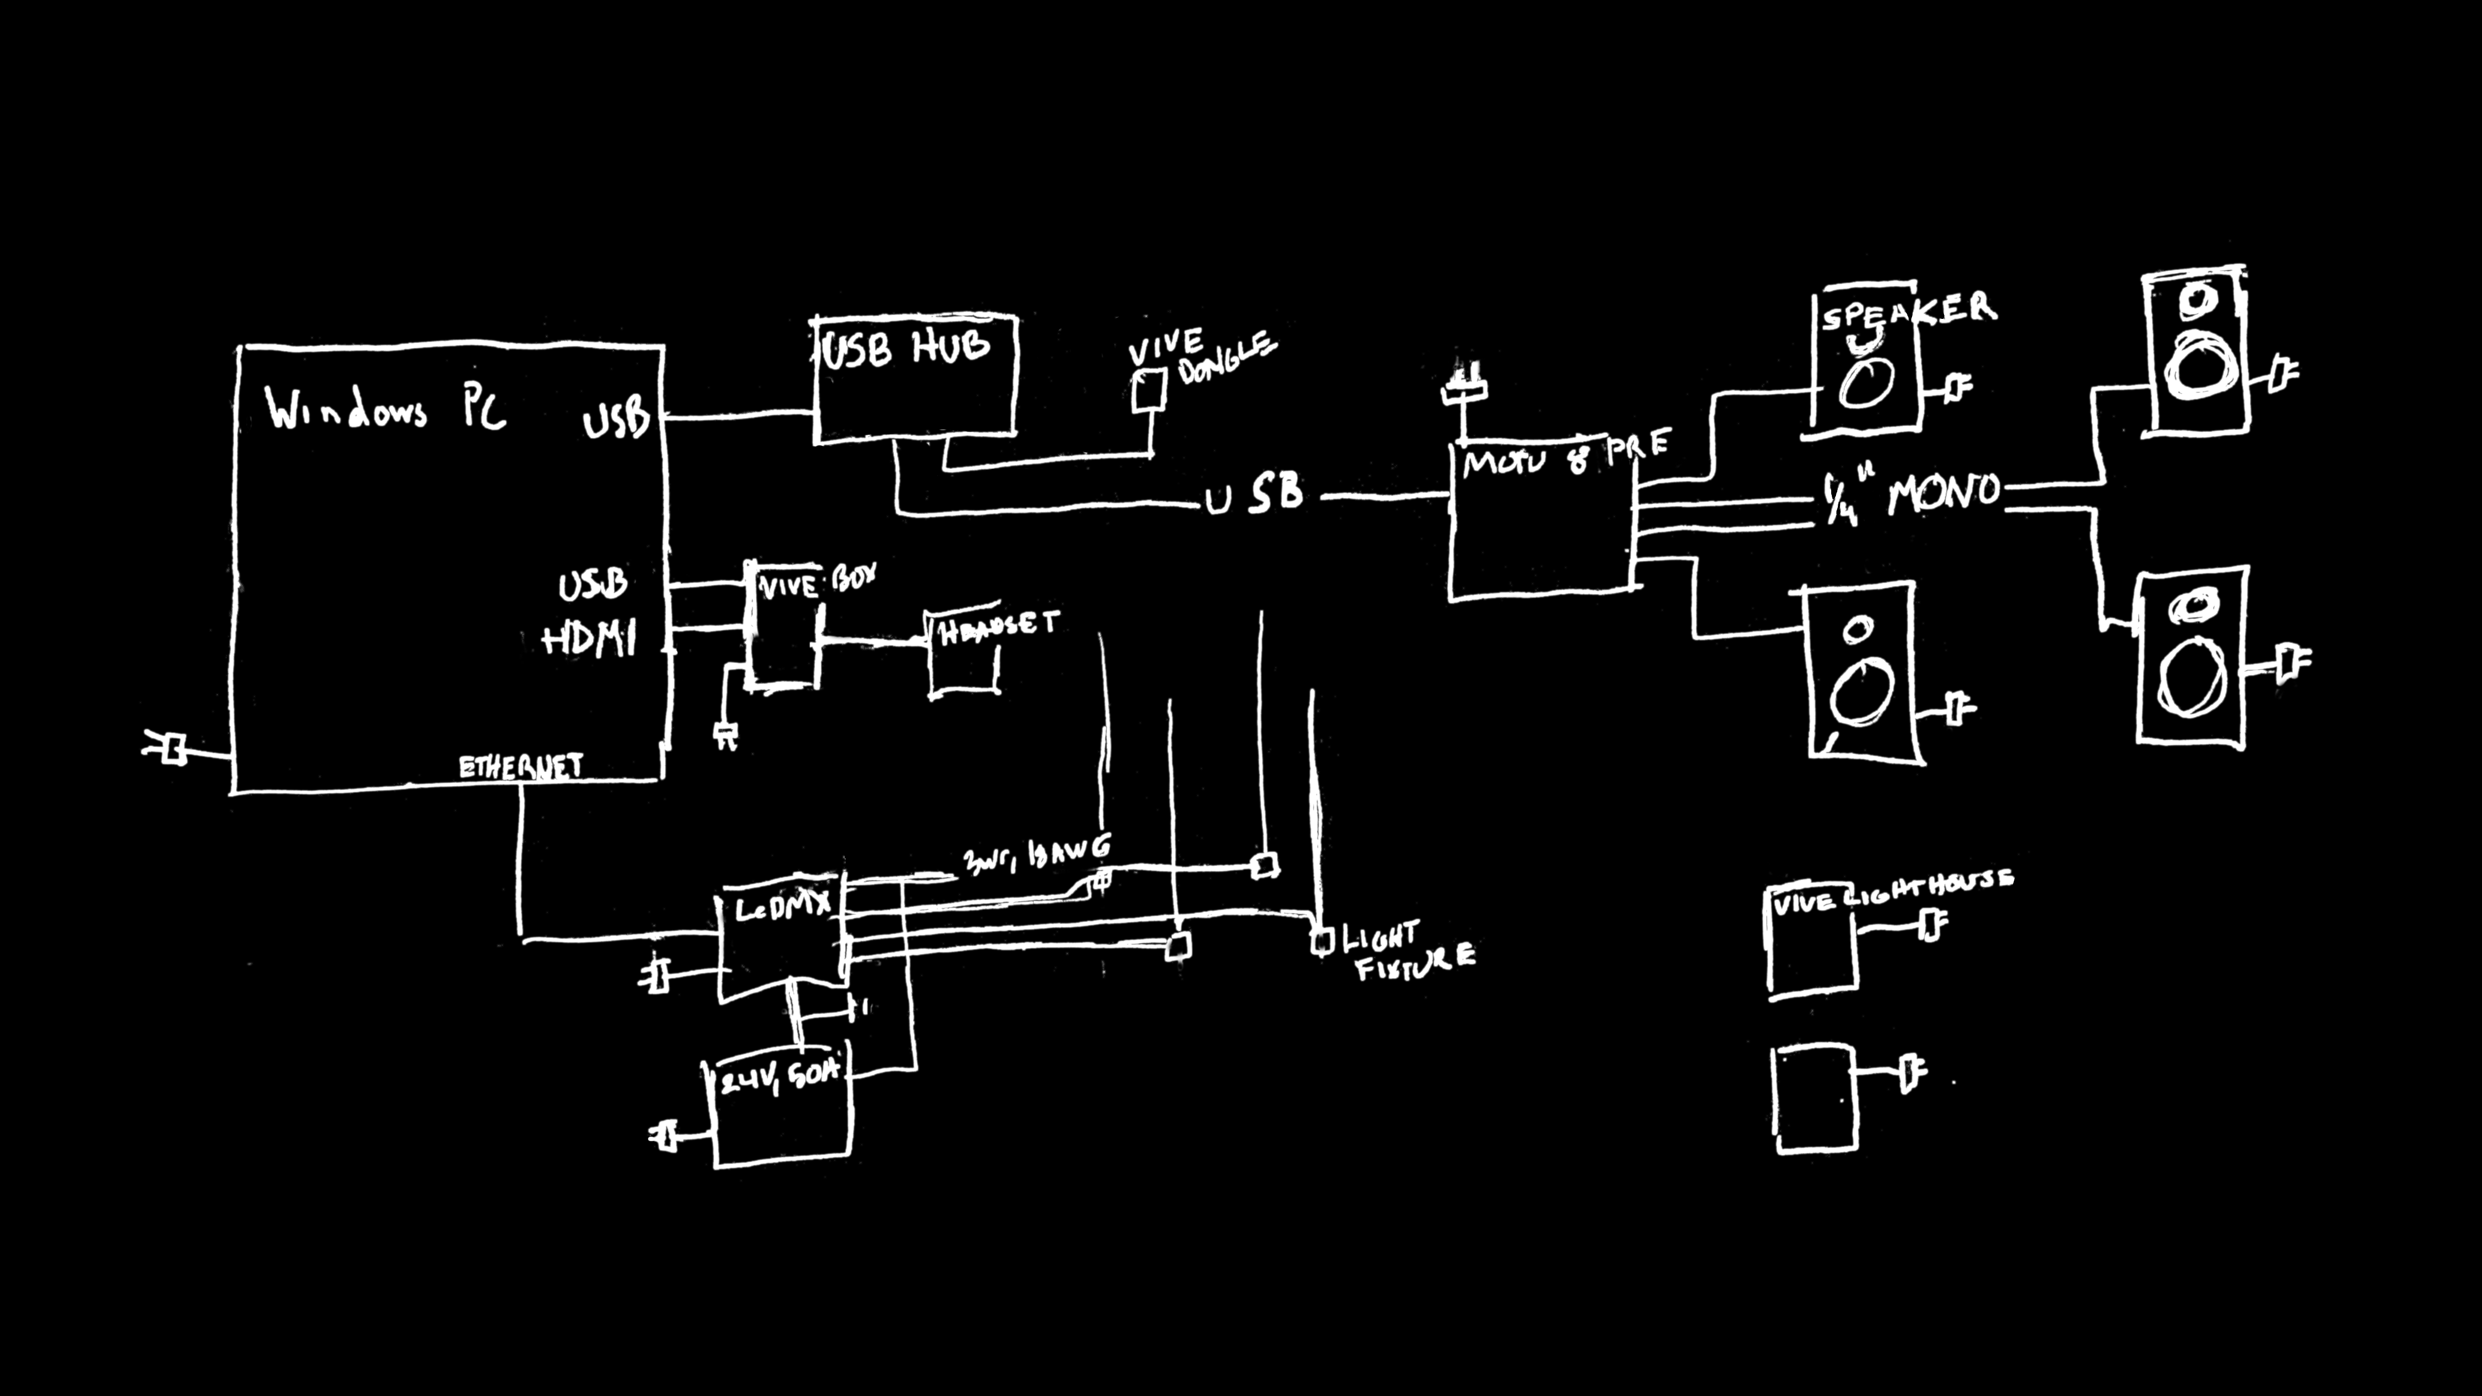 System diagram for the final installation.